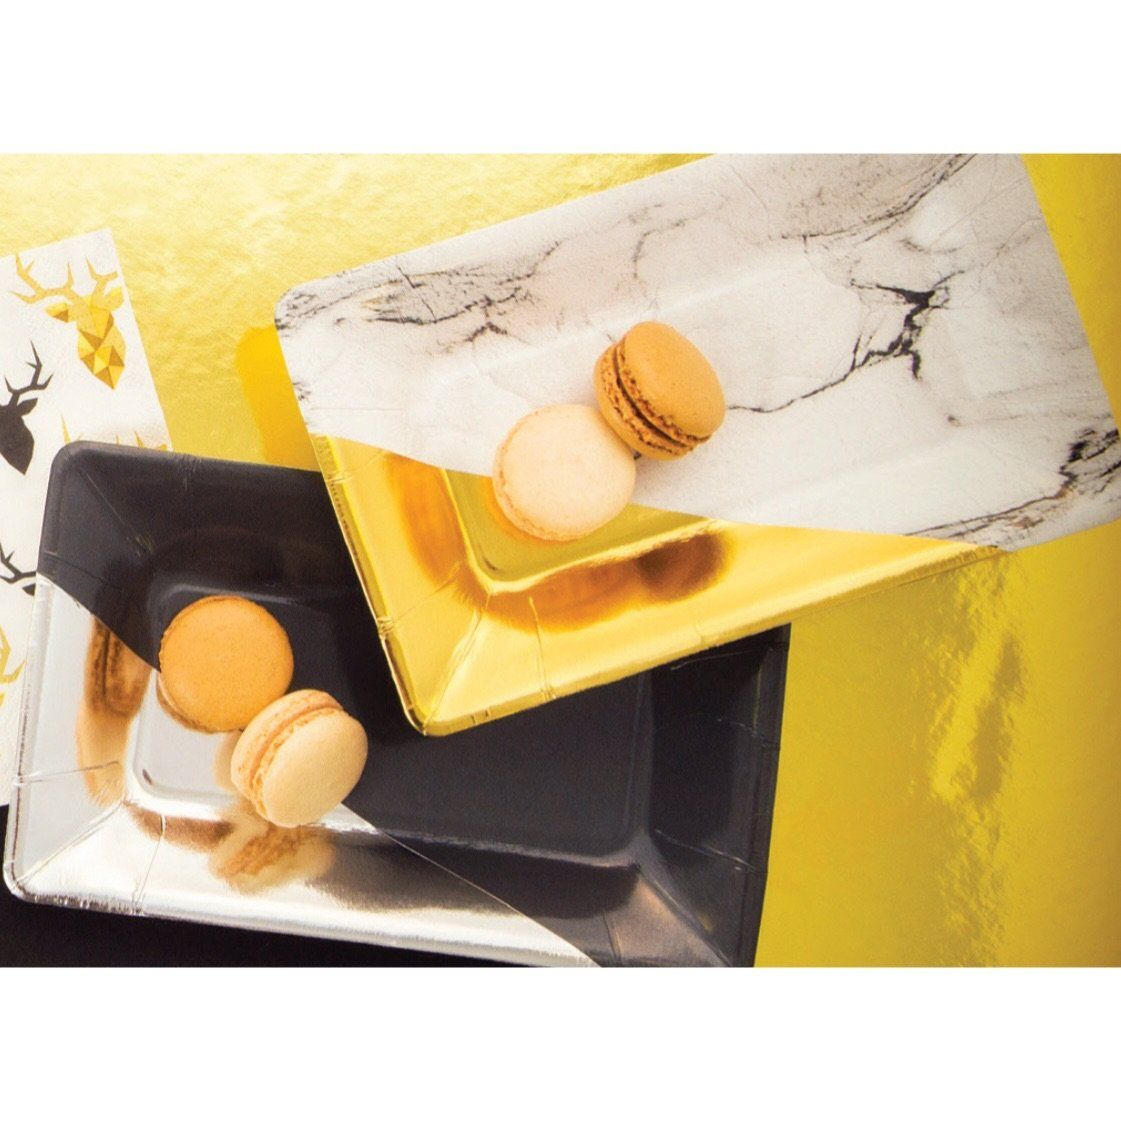 PLATES - SMALL RECTANGULAR MARBLE GOLD